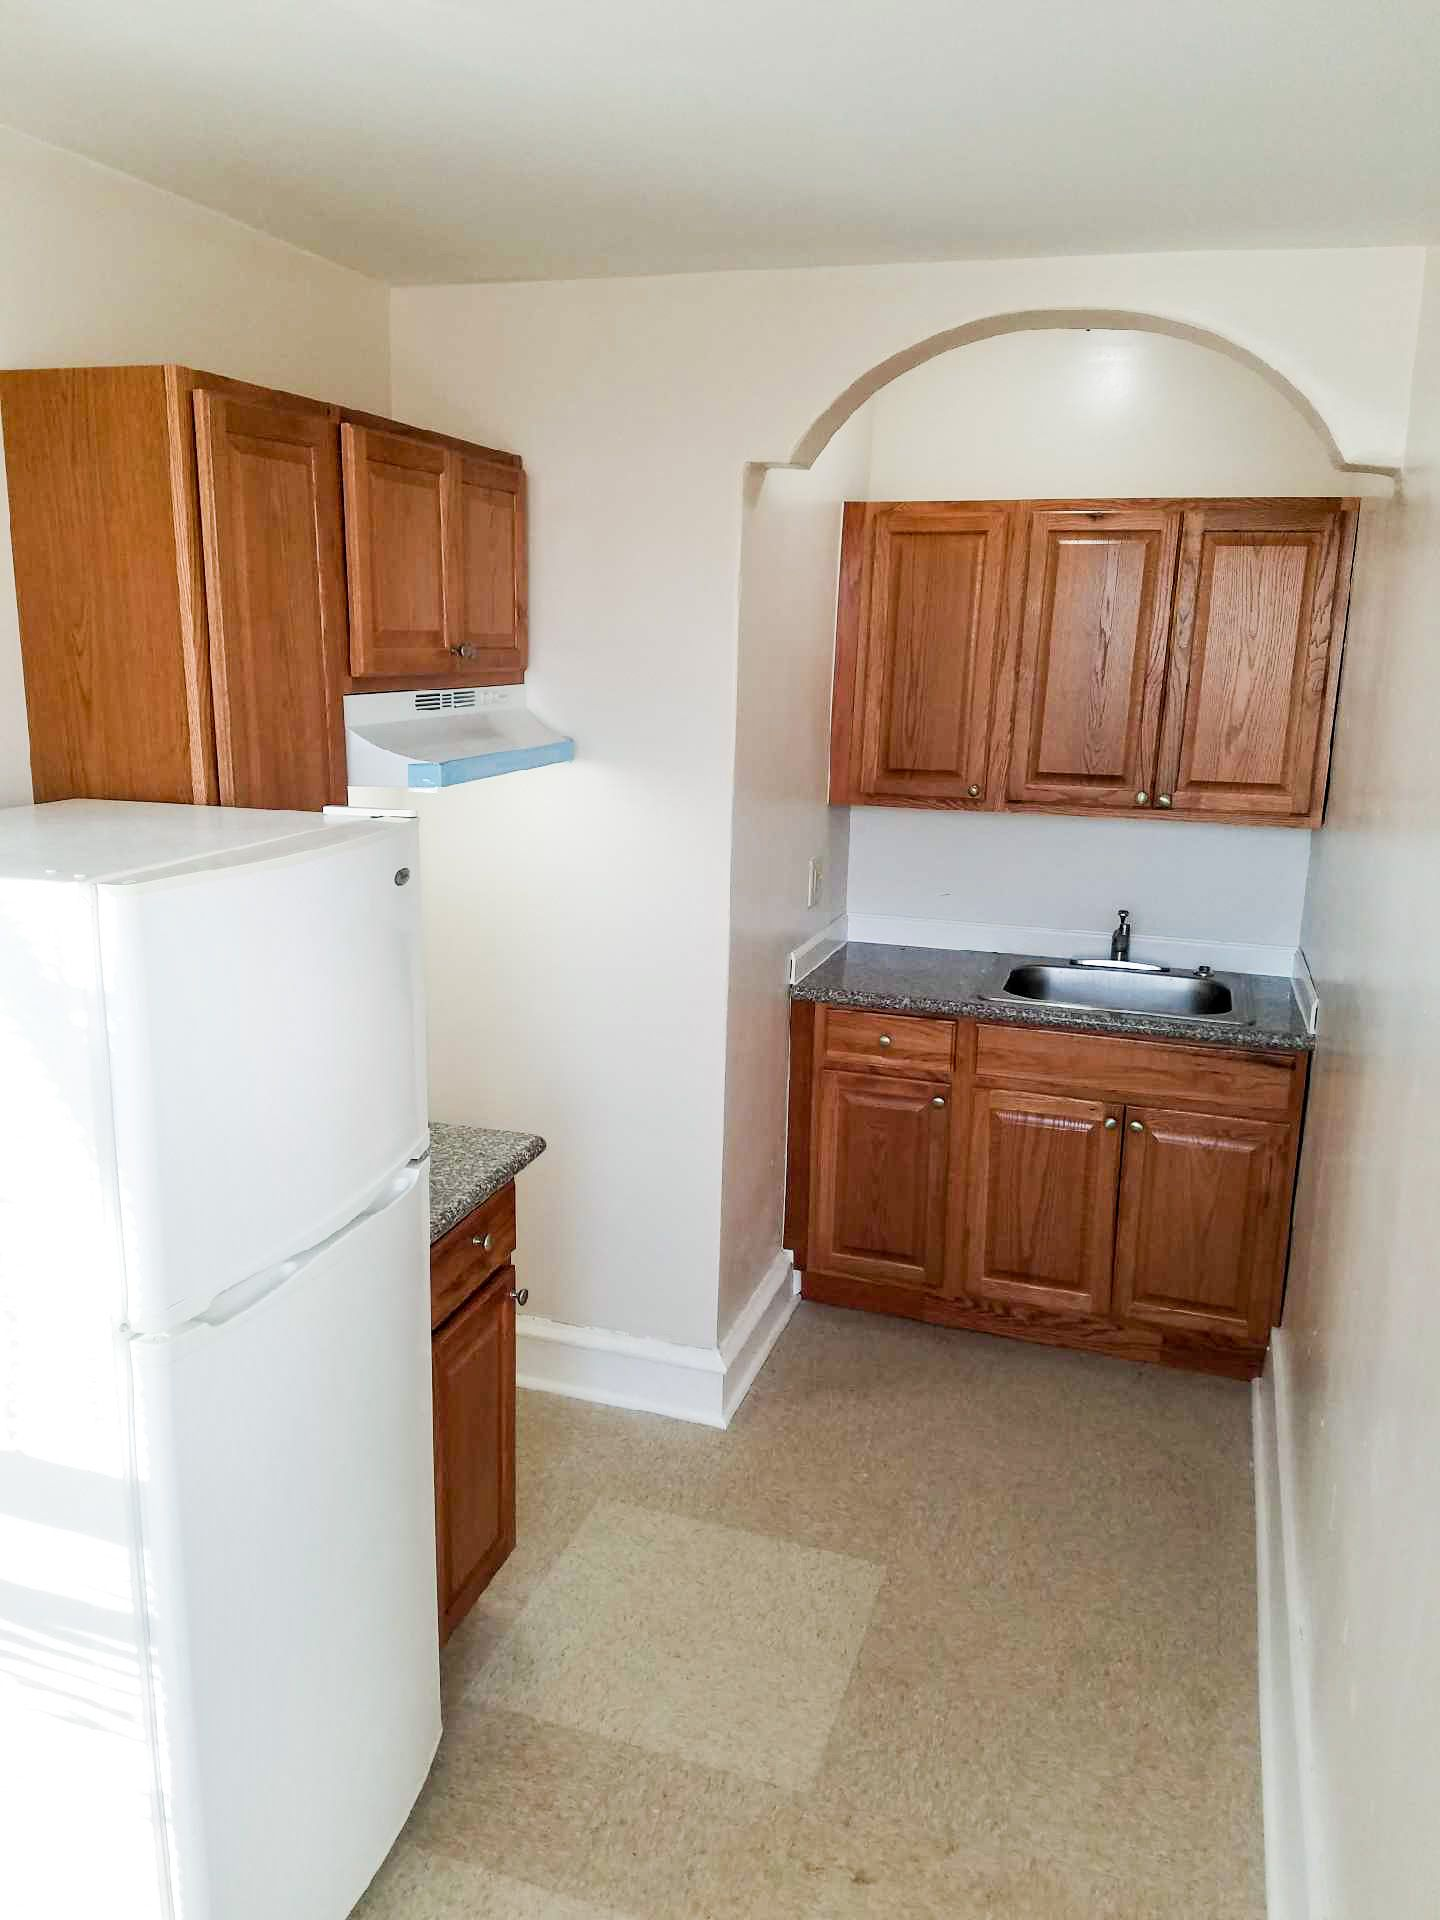 Newly Renovated 4209 Chester Ave Unit D1 Philadelphia Pa 19104 Is A 1 Bedroom Apartment Available N 1 Bedroom Apartment Bedroom Apartment Apartments For Rent